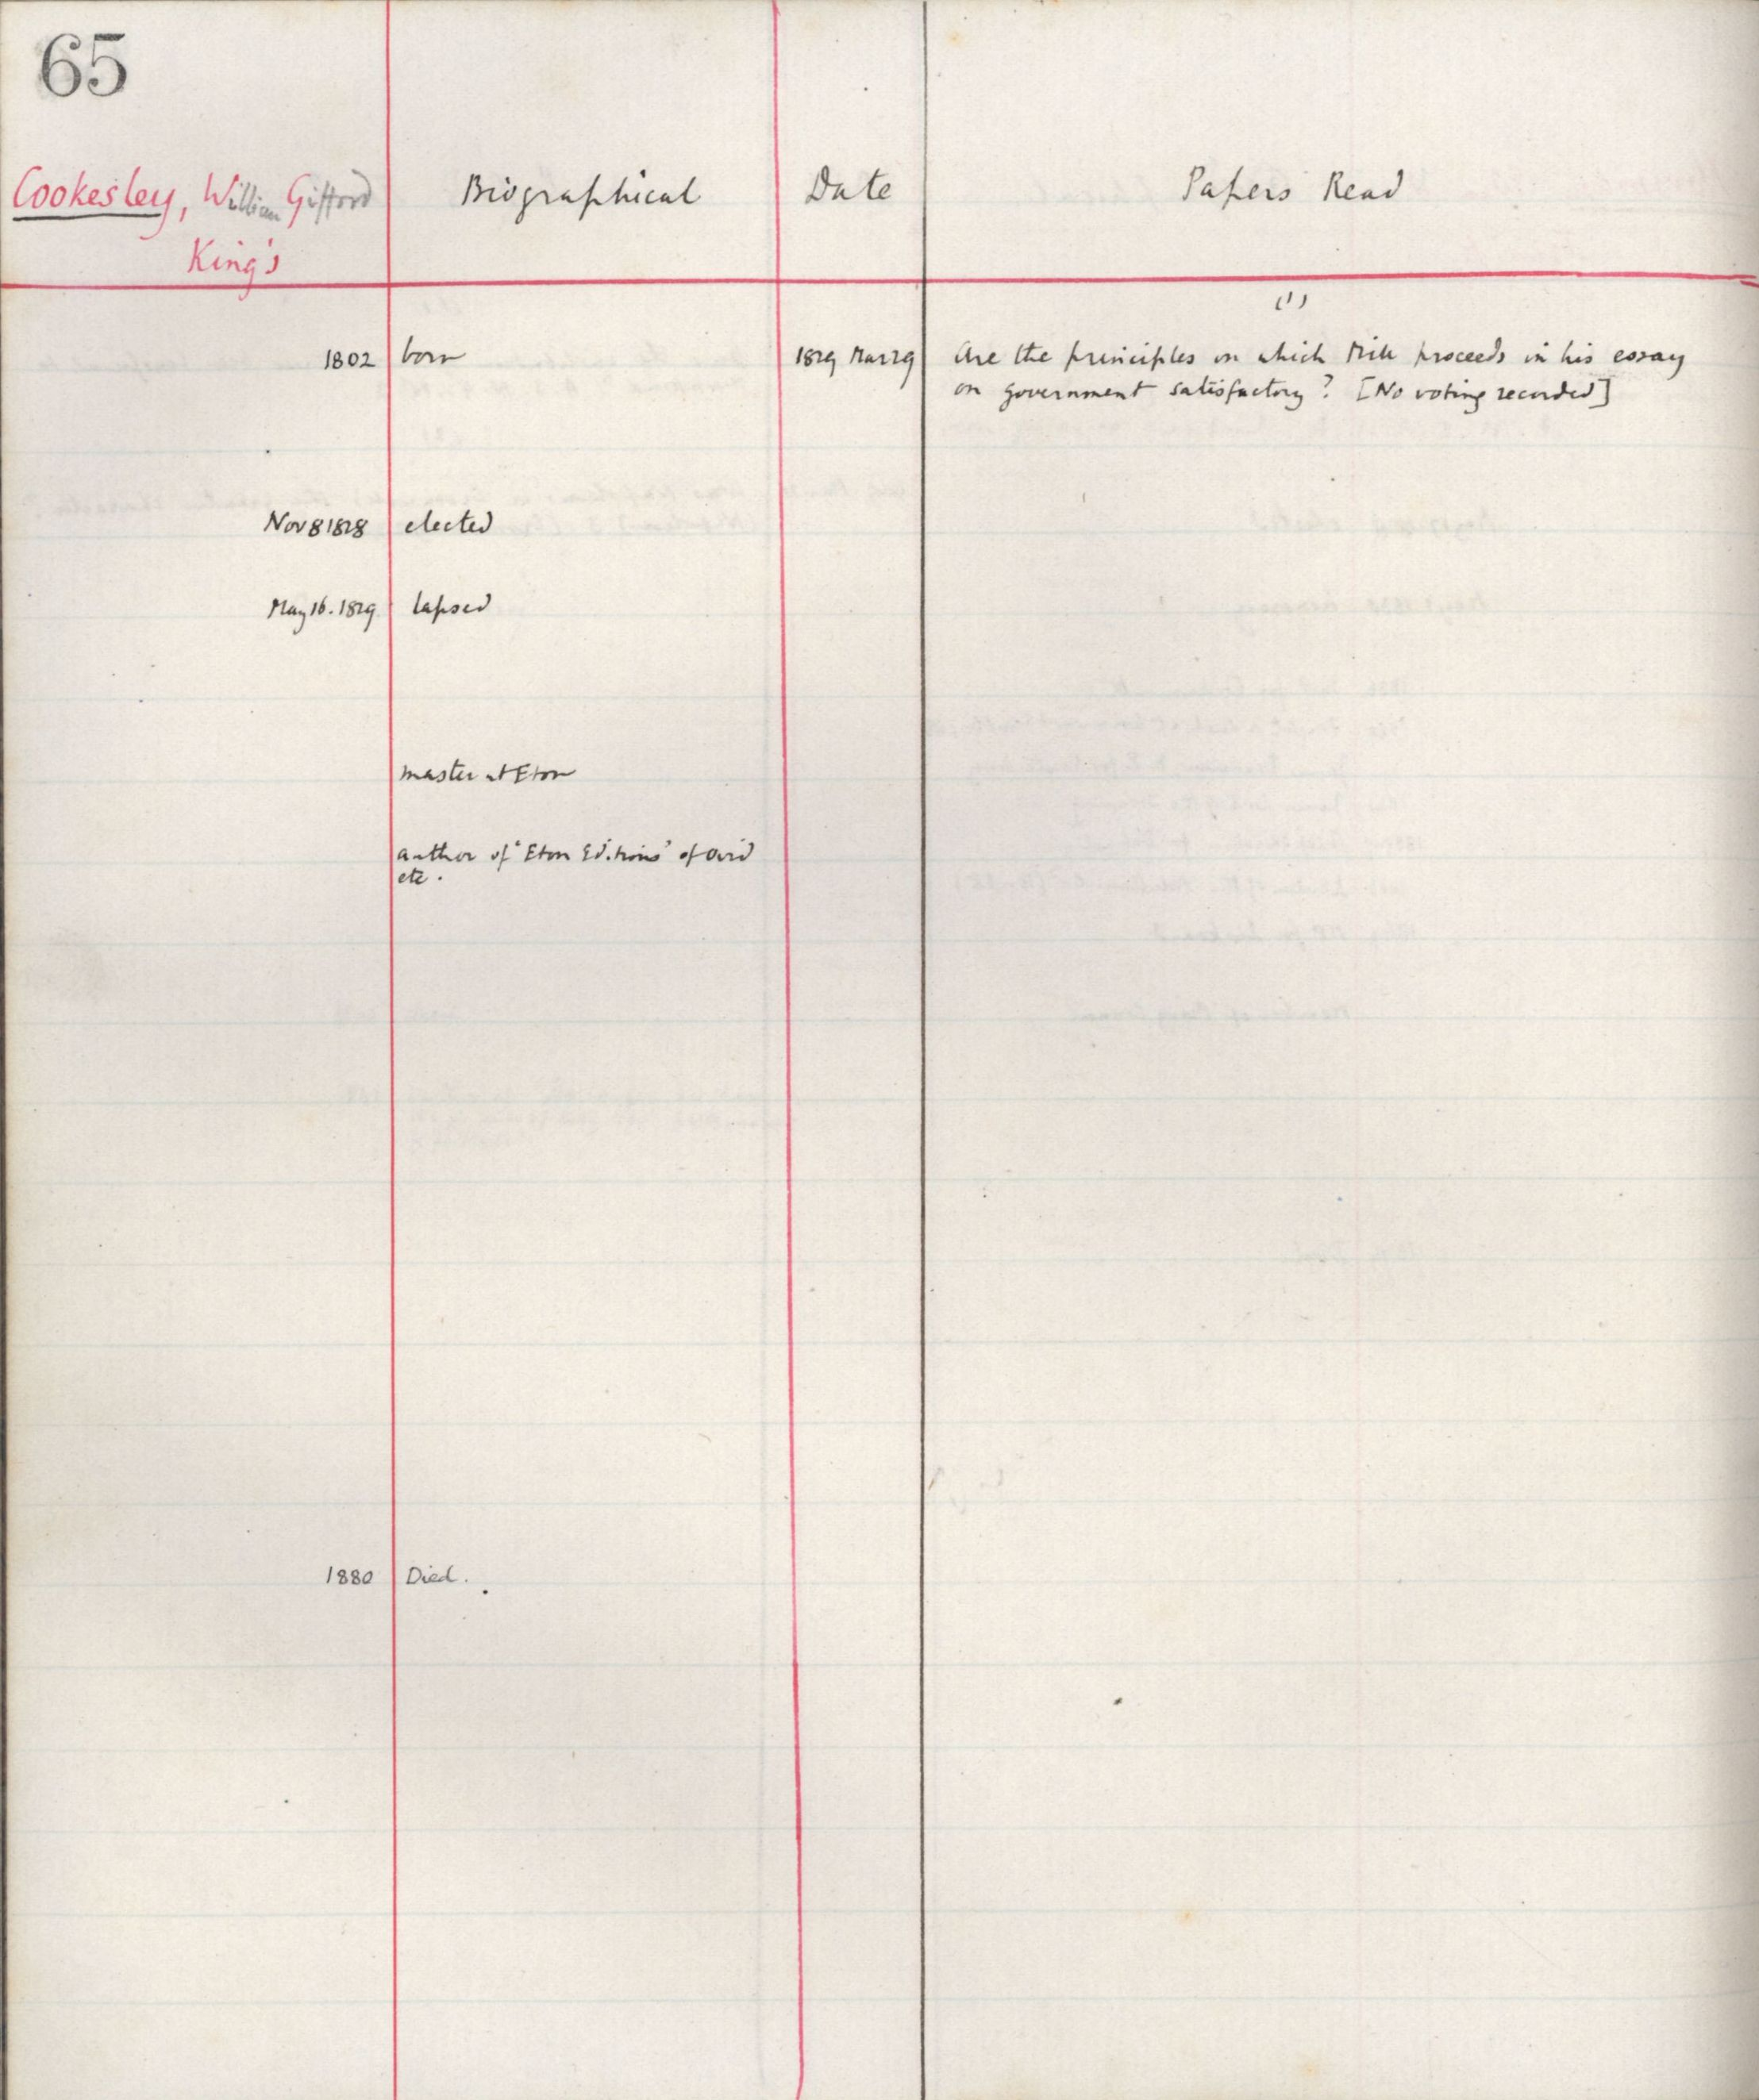 65: Cookesley, William Gifford. [KCAS/39/3/1, Register]